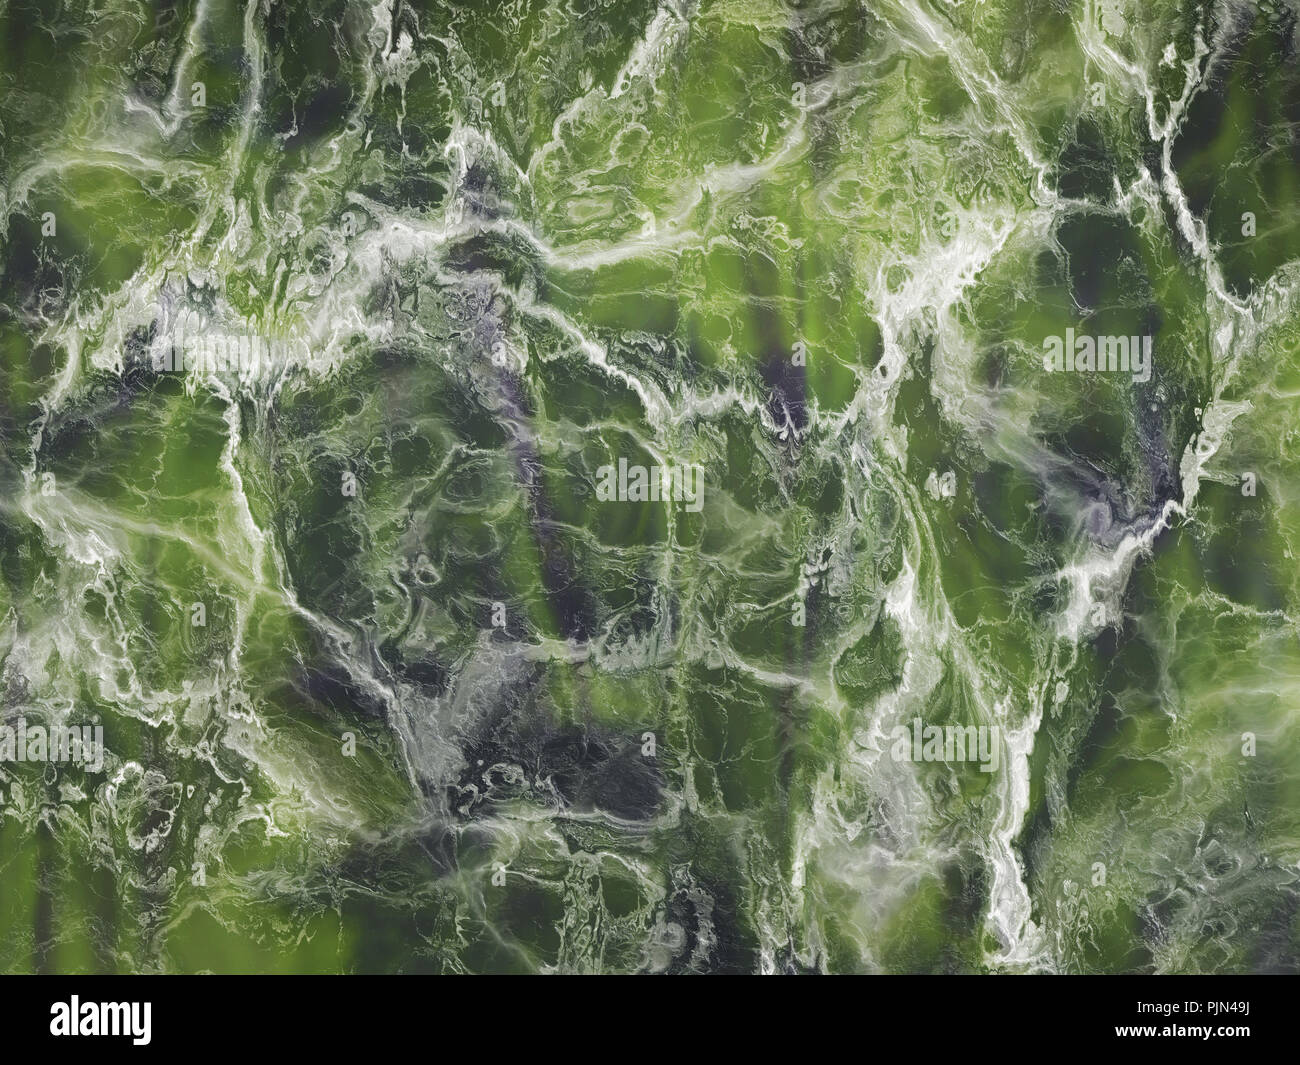 A nice background of marble, Ein schoener Hintergrund aus Marmor - Stock Image